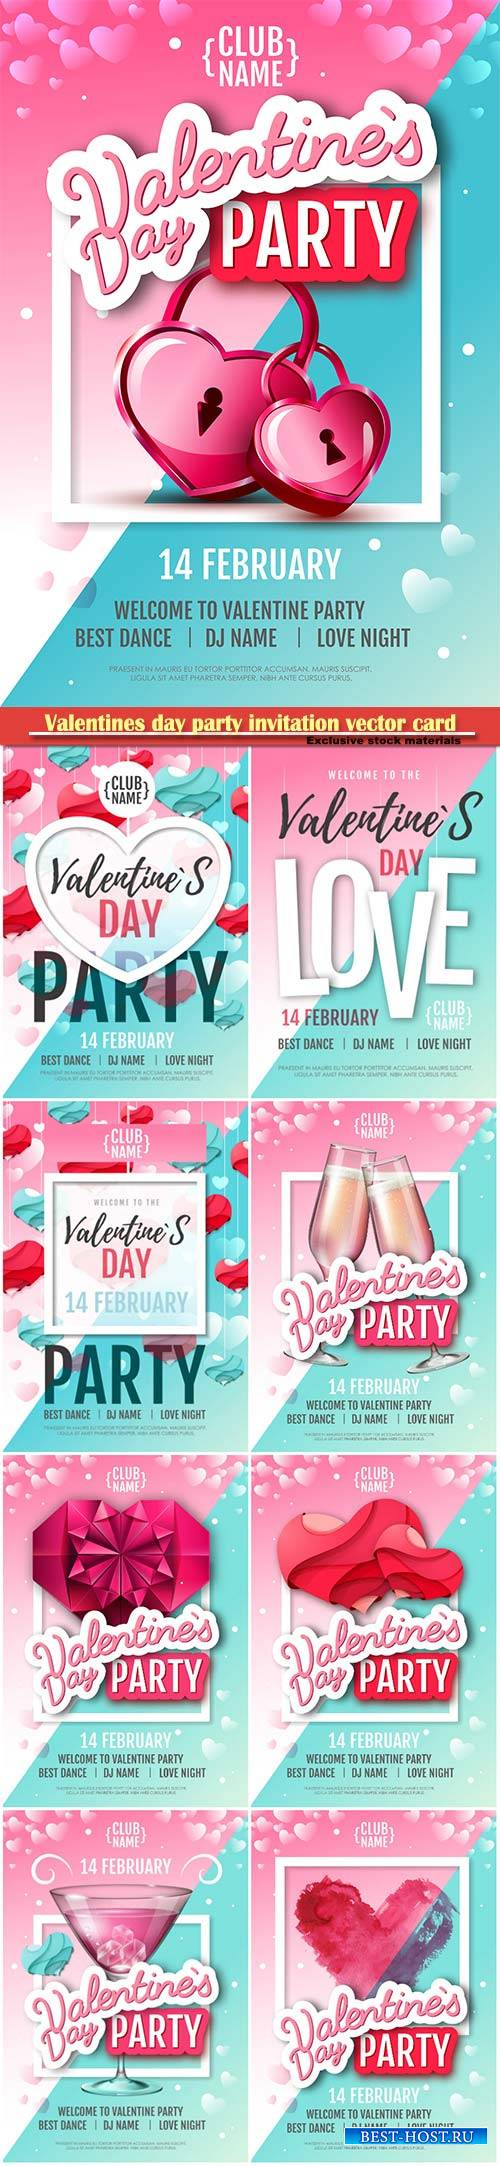 Valentines day party invitation vector card # 12